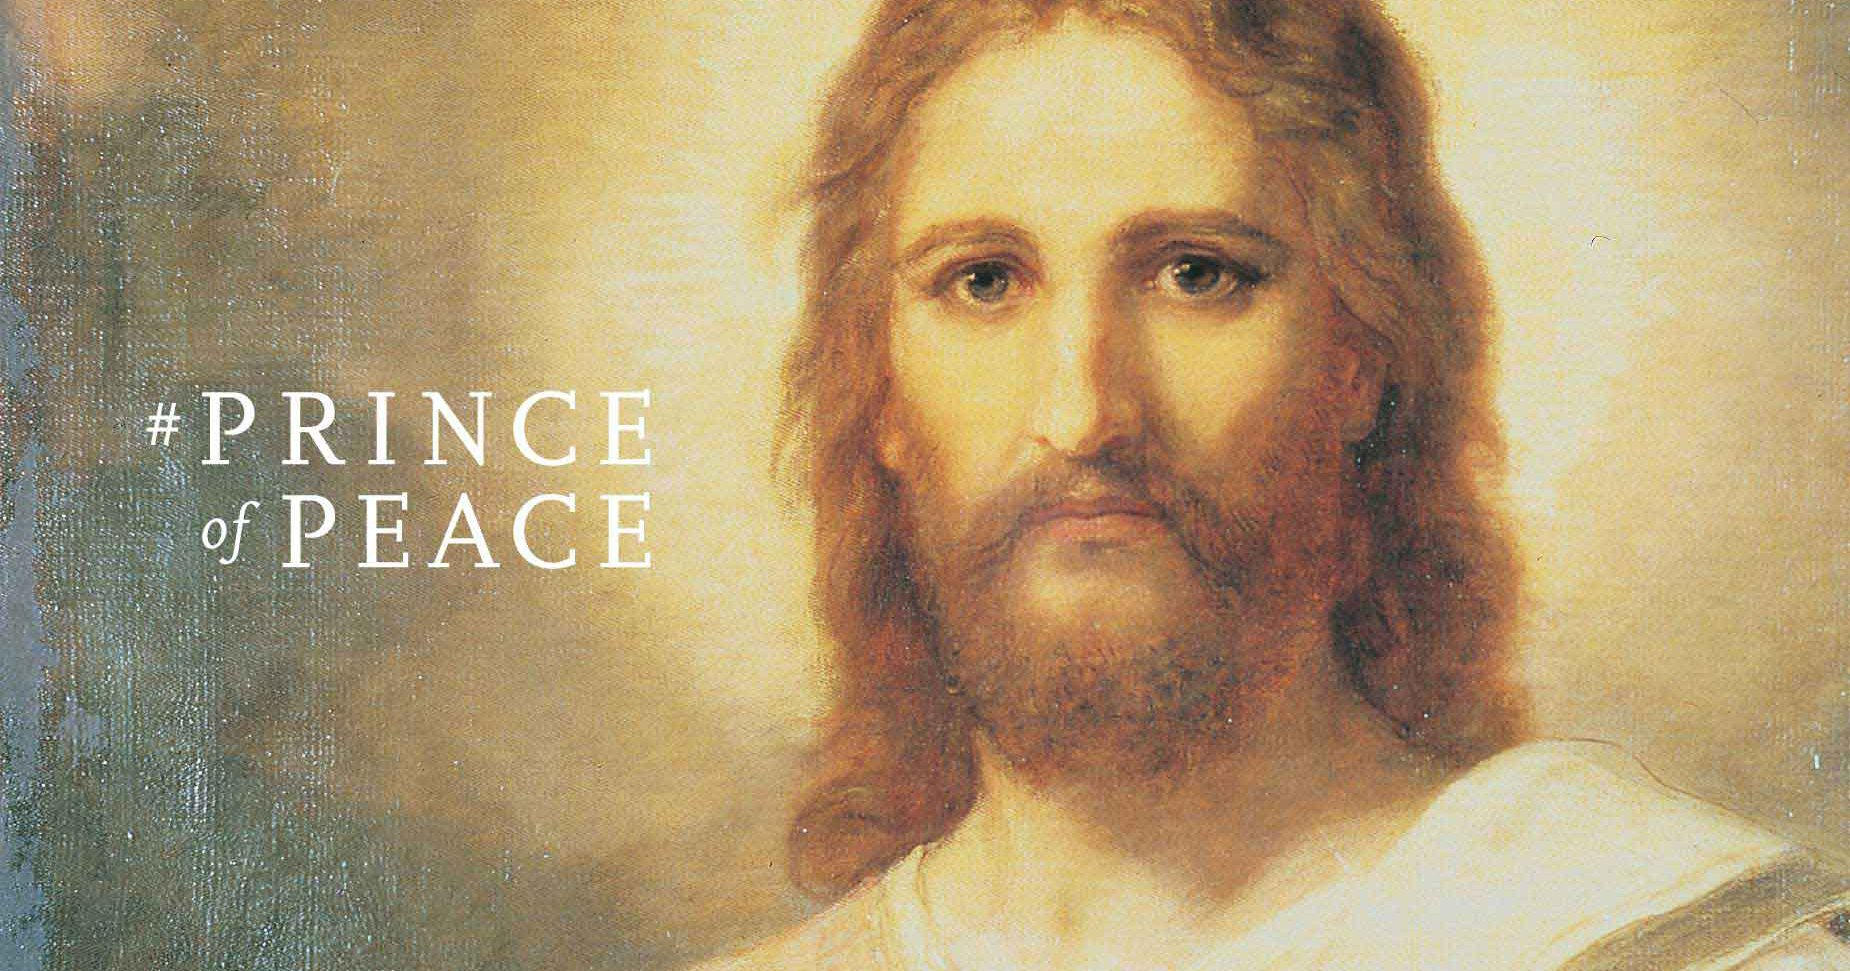 New #PrinceofPeace Video Released